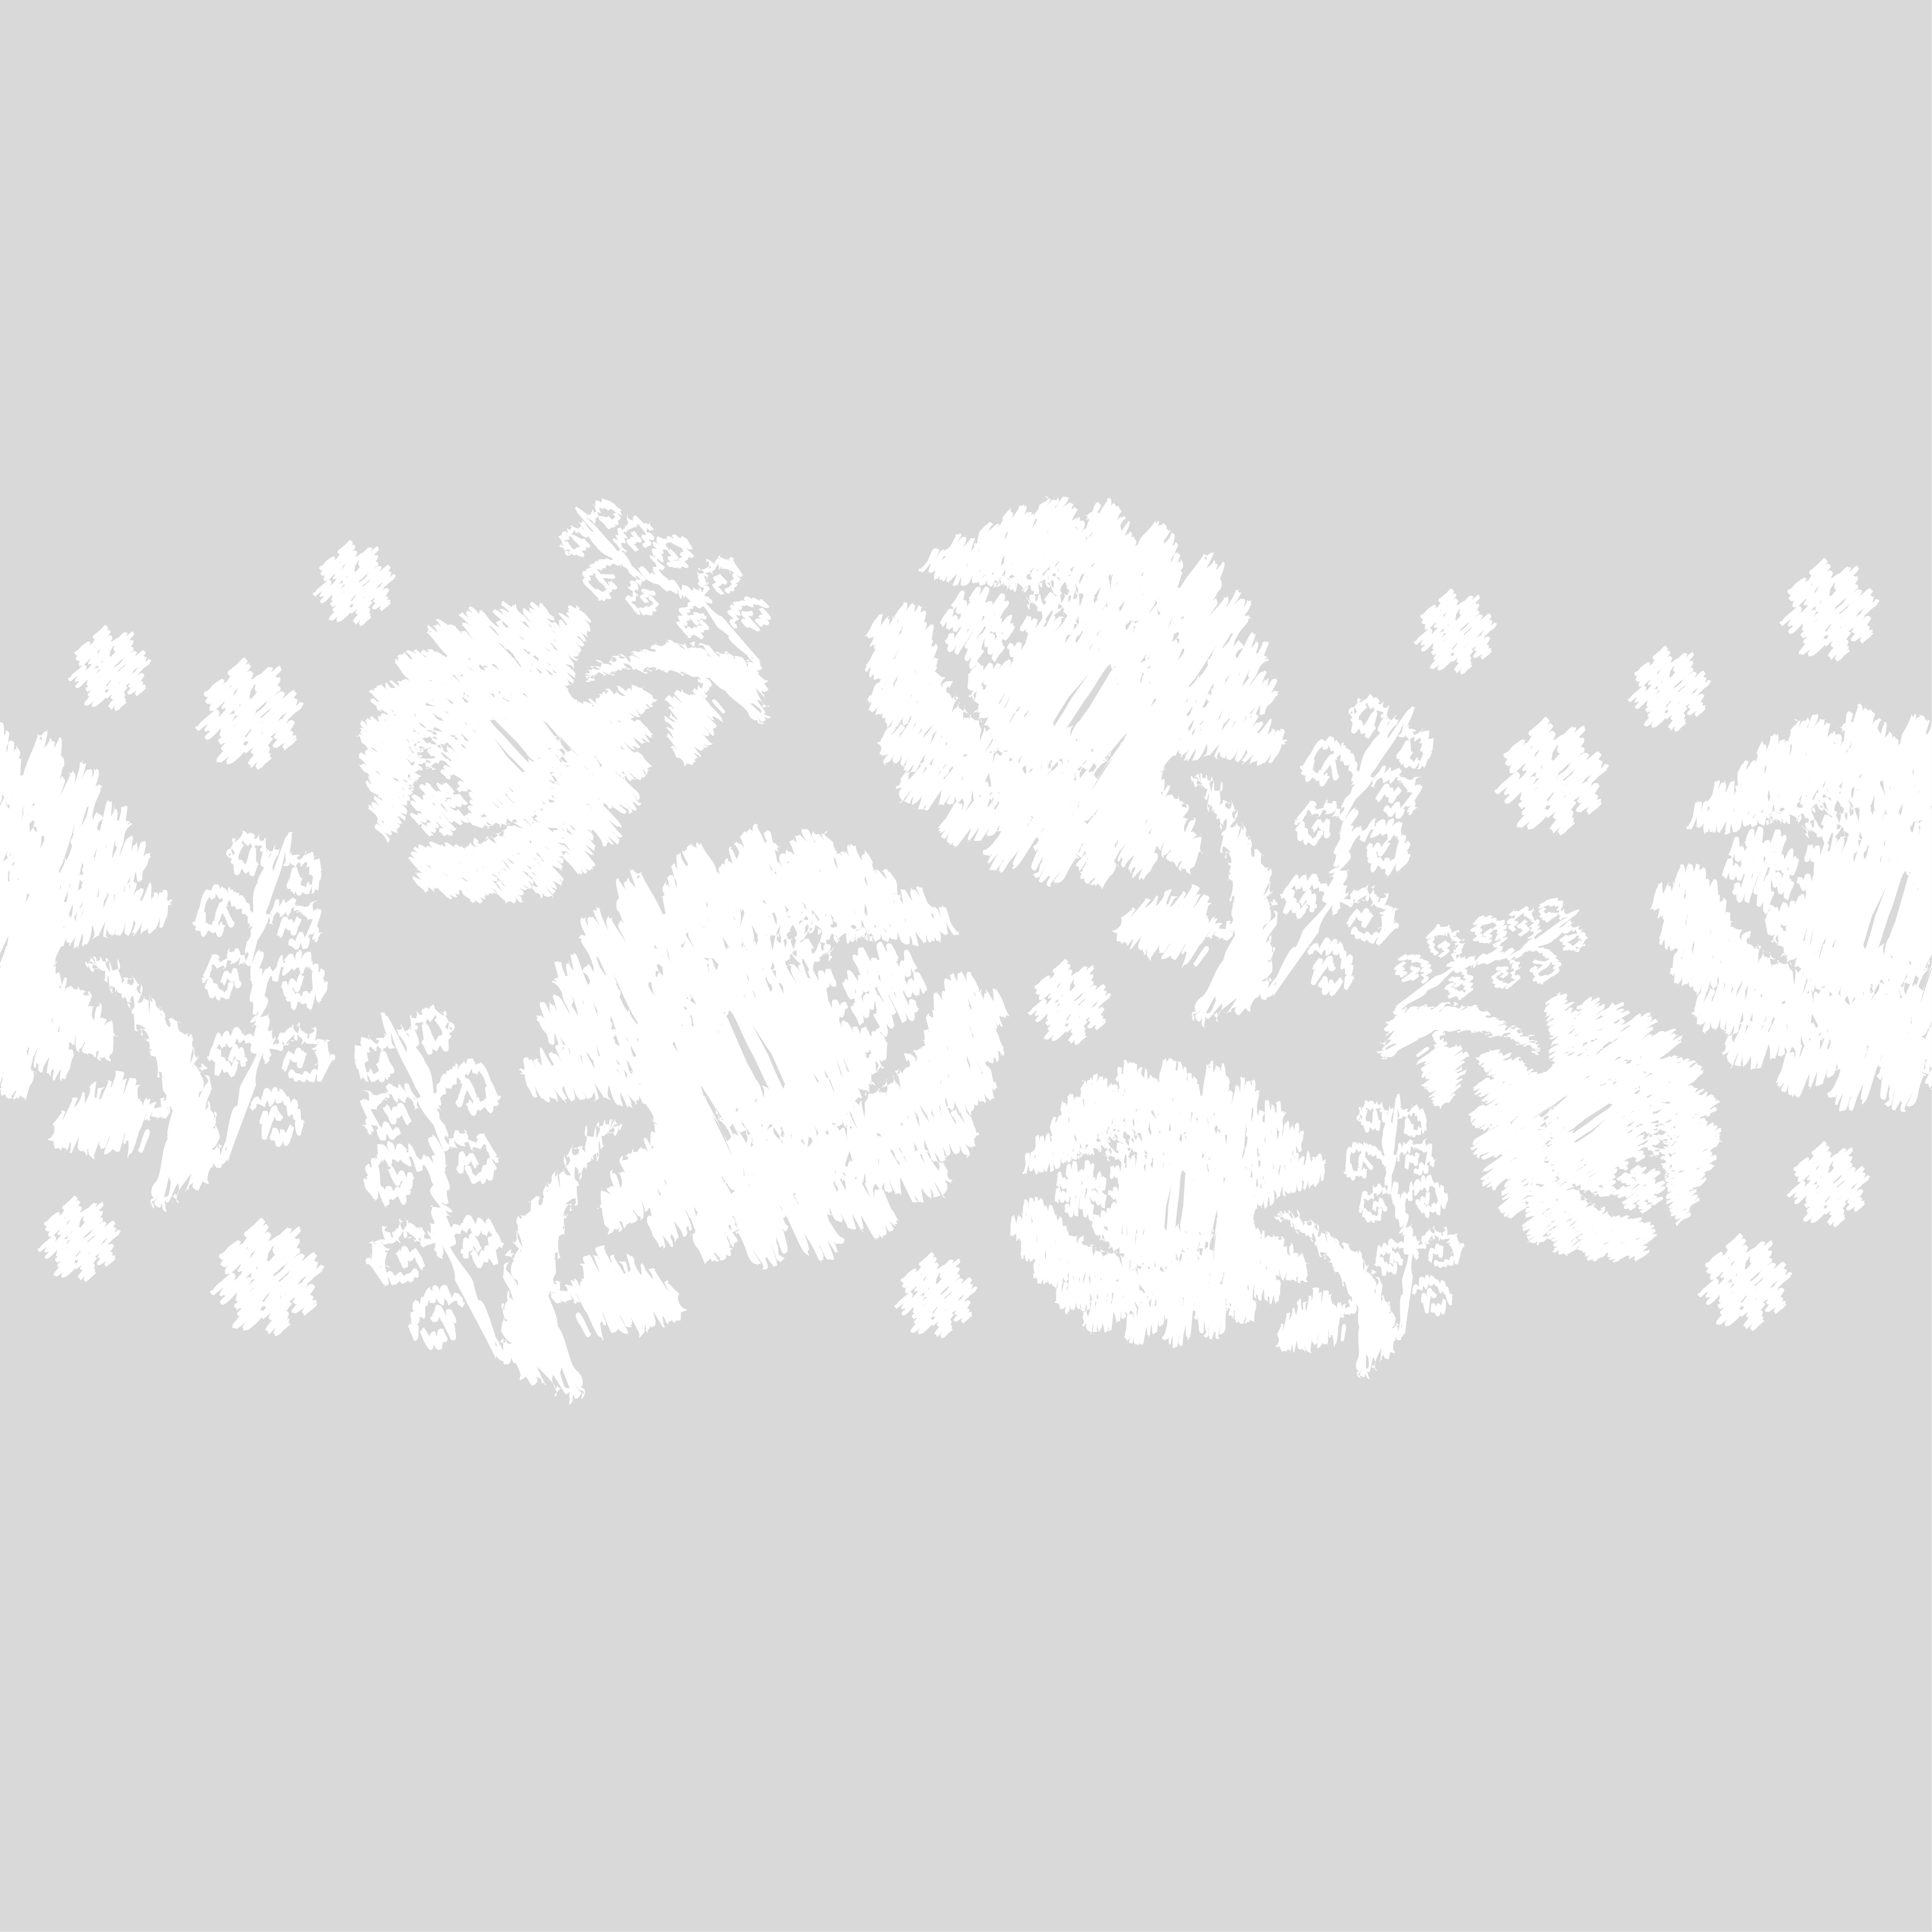 Set of 6 Seamless vector background. White flowers on a gray background. example image 2